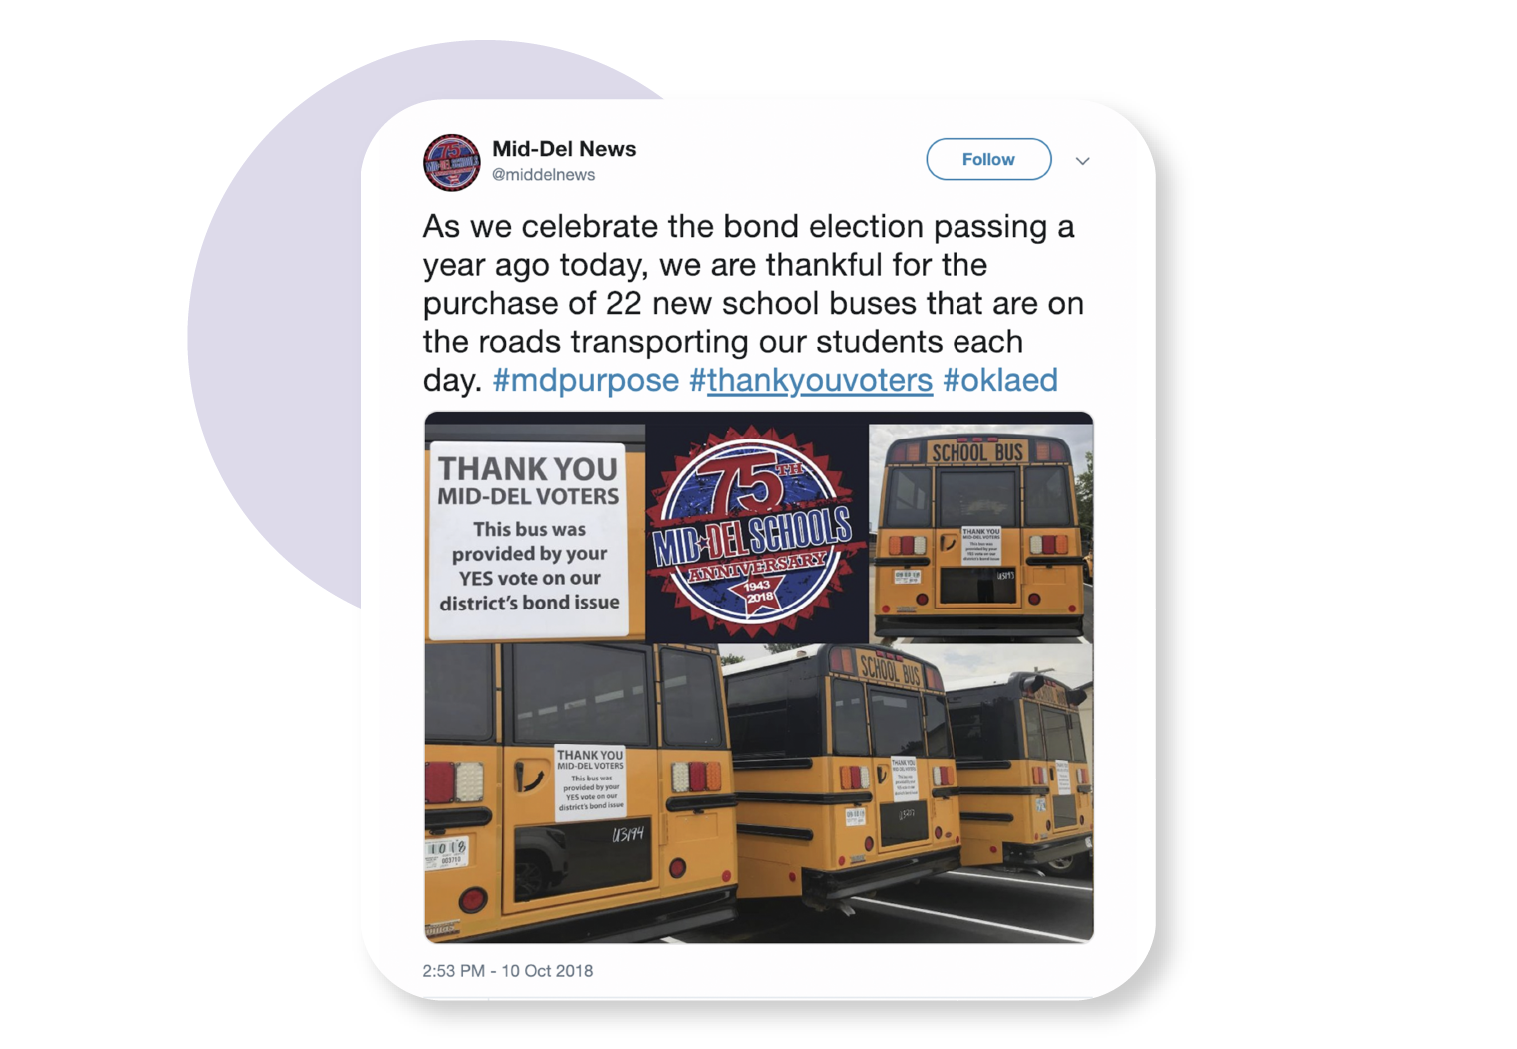 image showing tweet from middelnews using the thank you voters hashtag